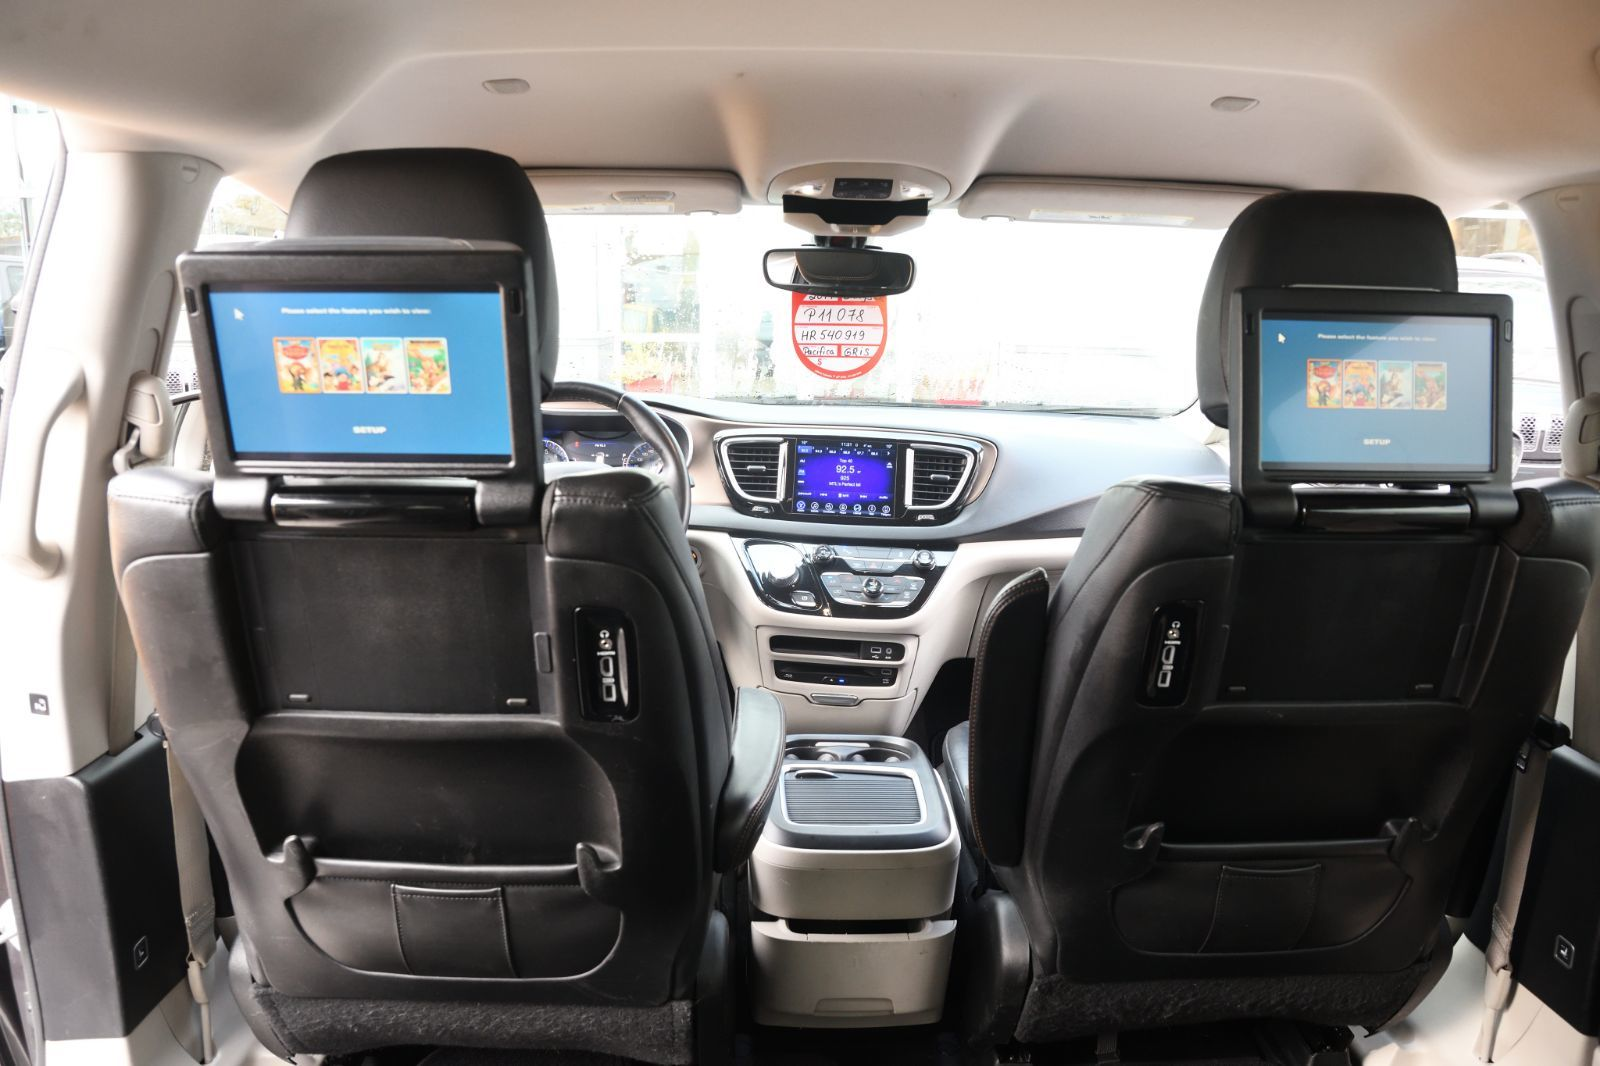 2017 Chrysler Pacifica complet